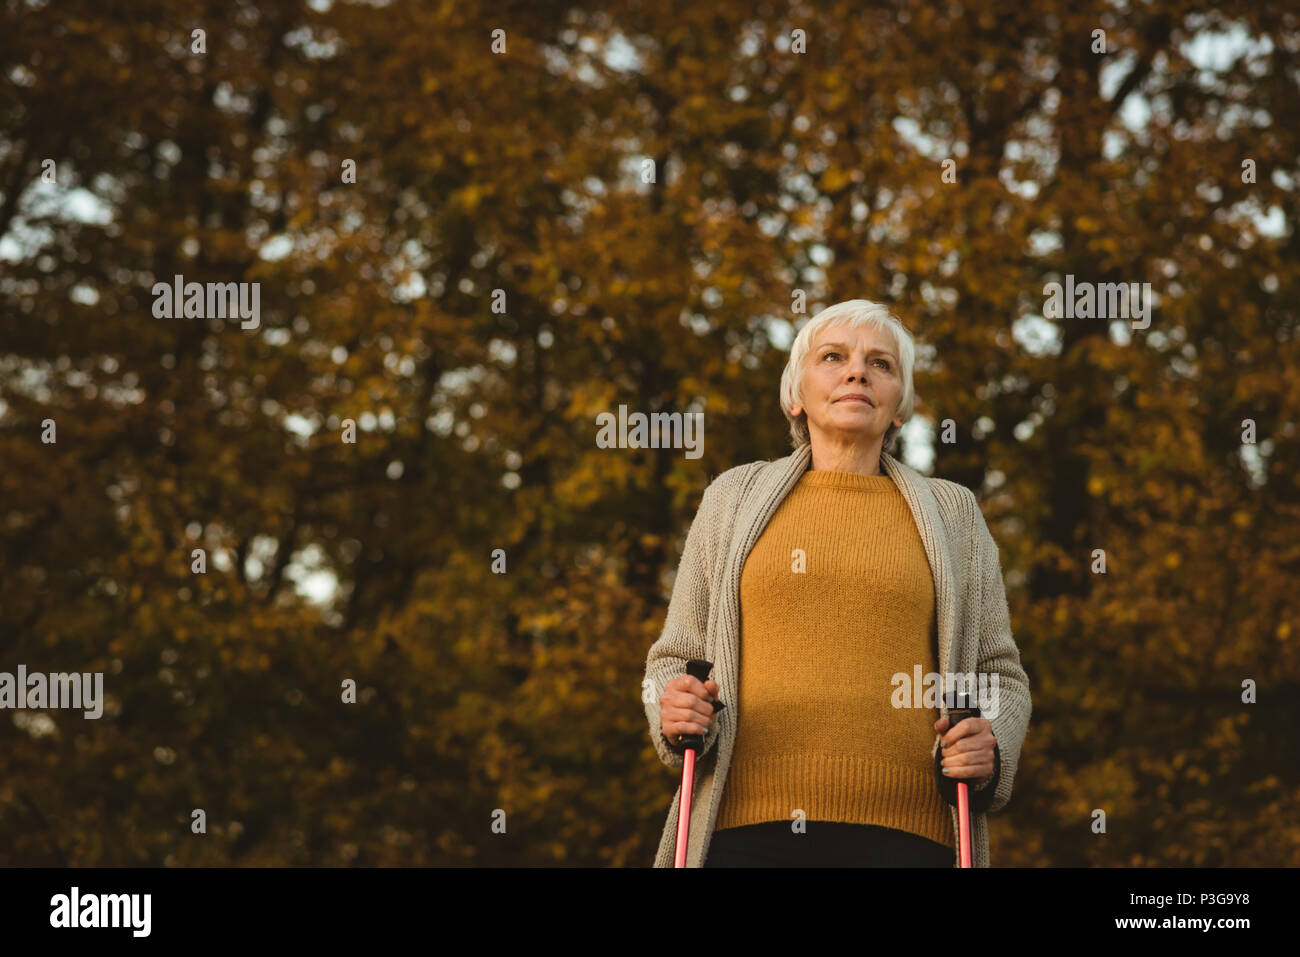 Senior woman walking on a dusty road with walking sticks - Stock Image